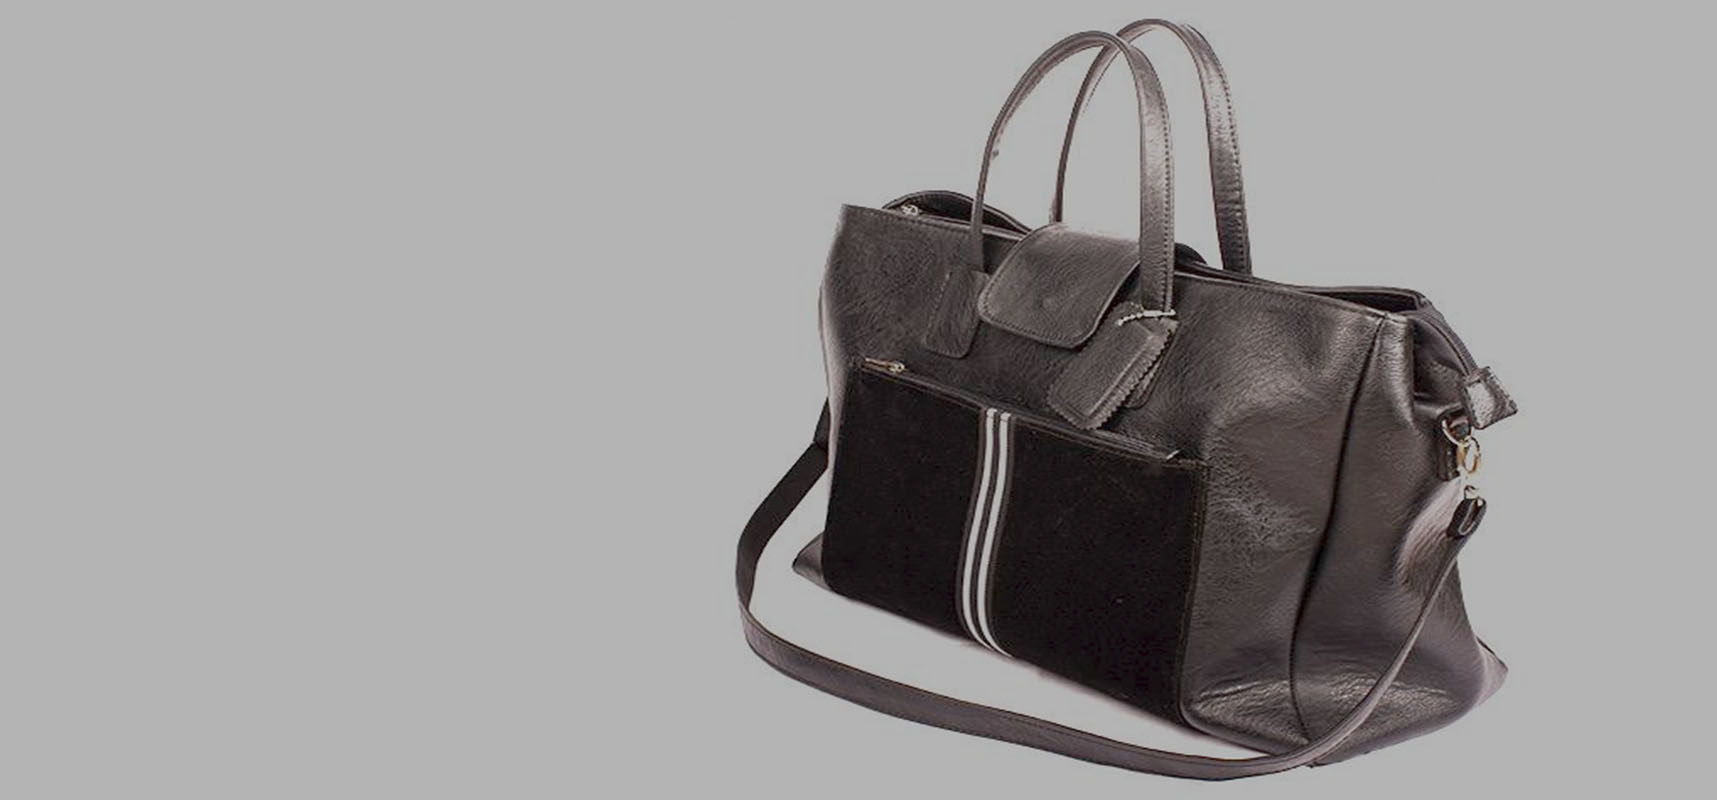 Weekend bag sustainable fashion